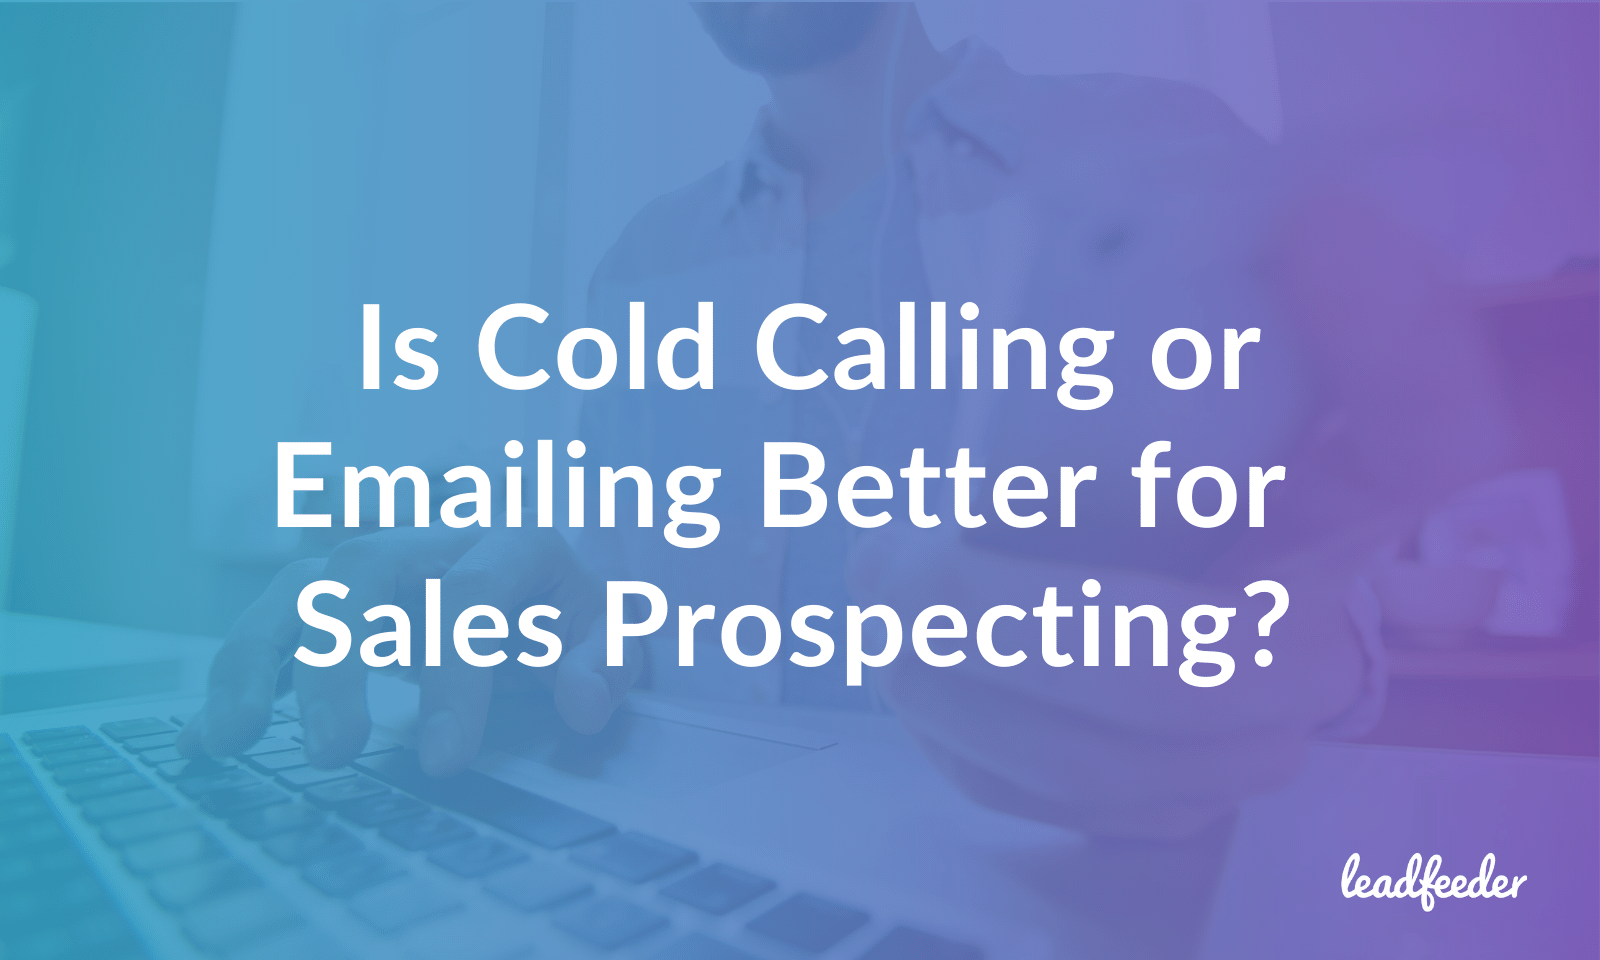 b2b-cold-call-vs-email-header